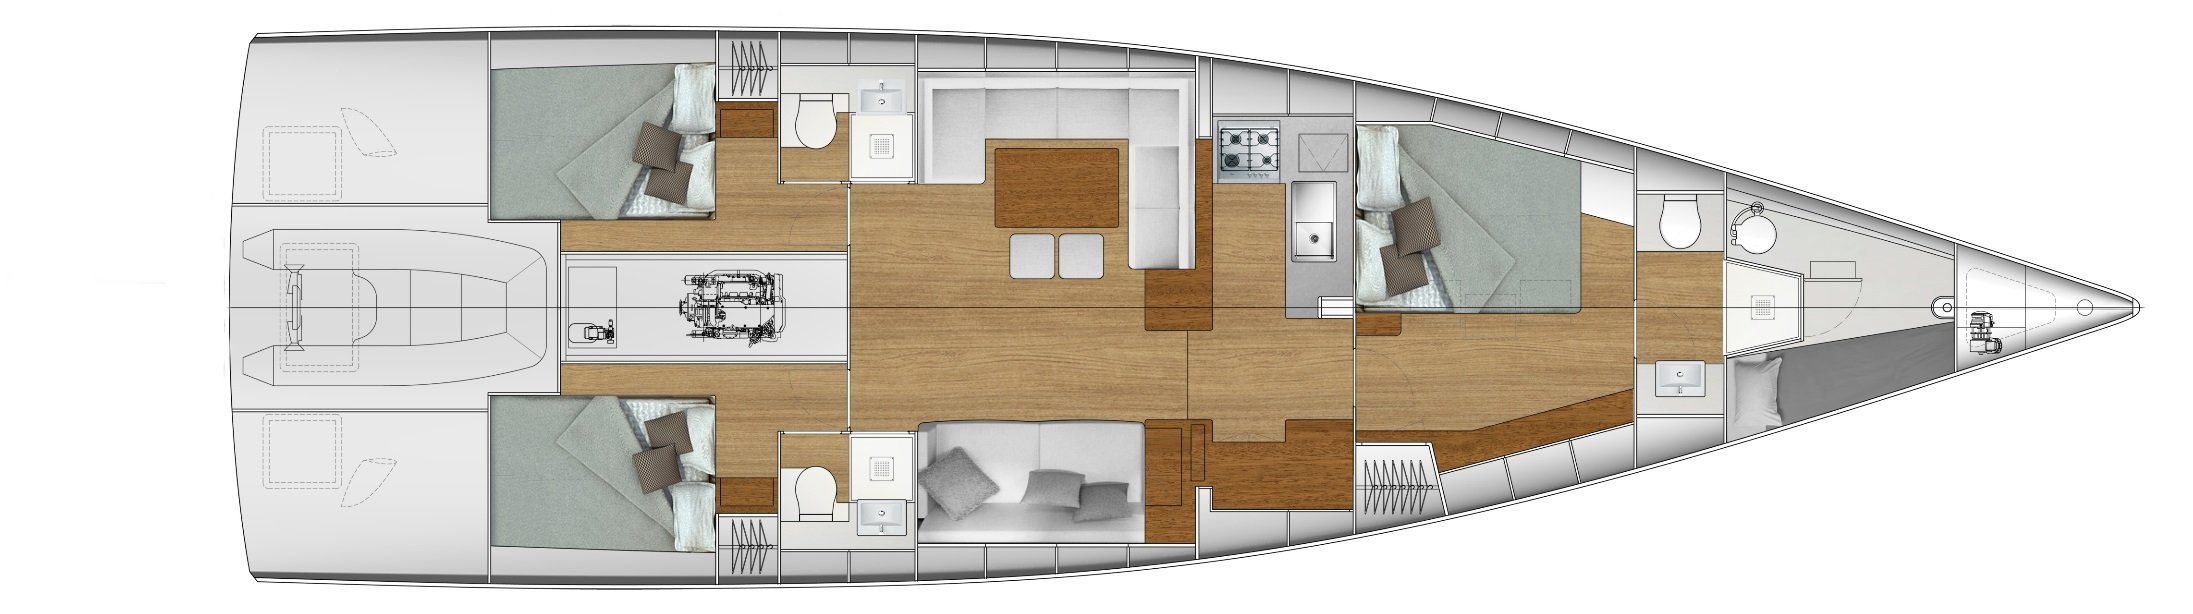 Vismara V56 Mills 3-cabin interior layout plan